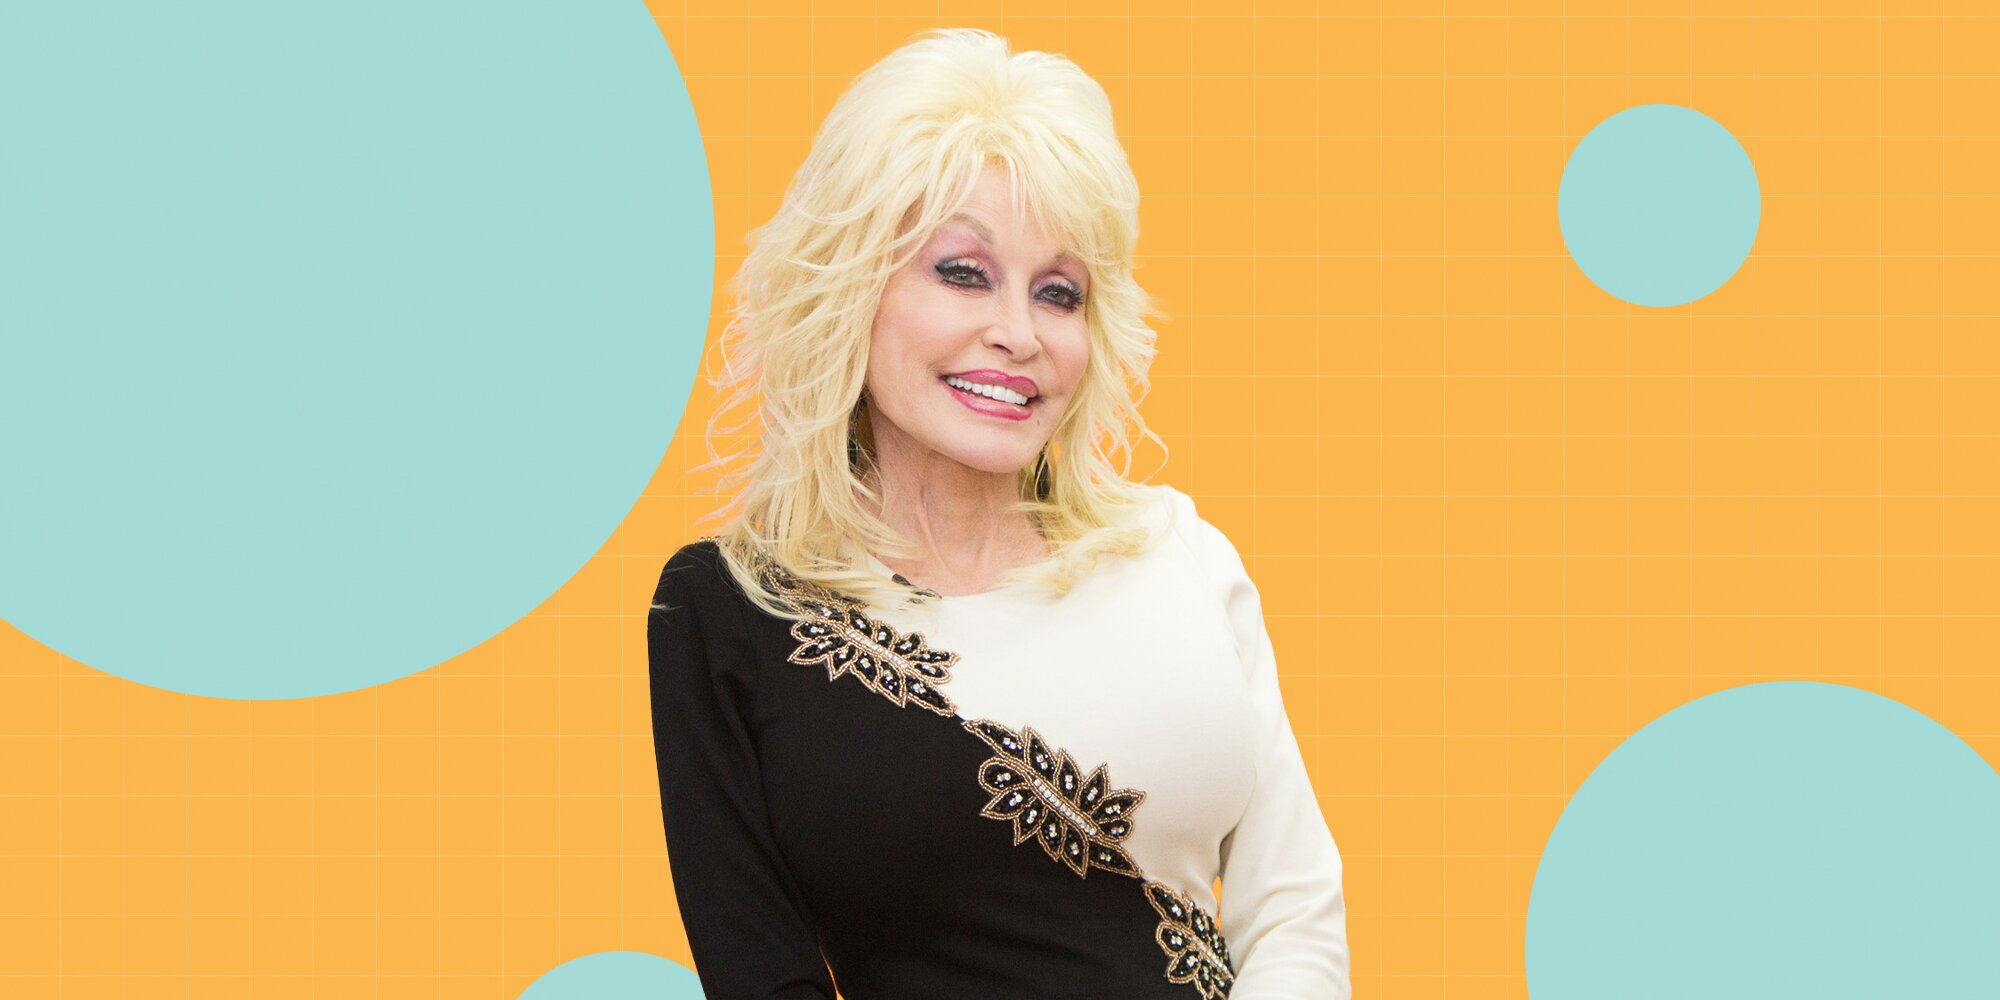 Here's What Dolly Parton Eats in a Day to Stay Healthy and Look Radiant